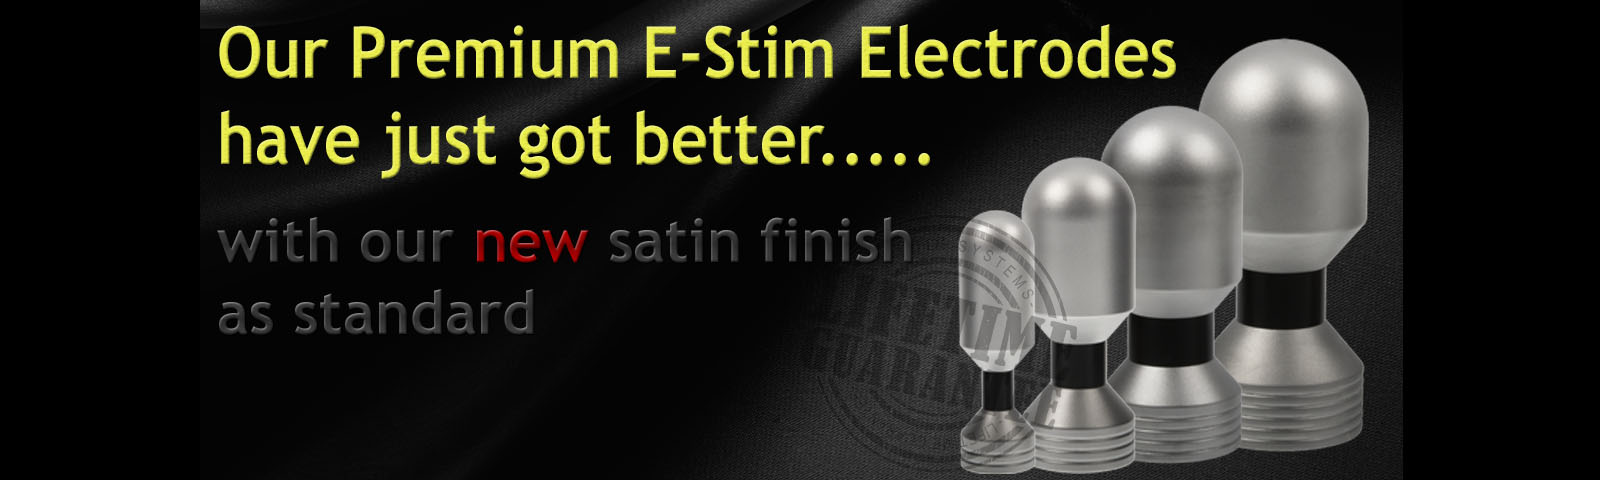 Satin Finish Electrodes now available